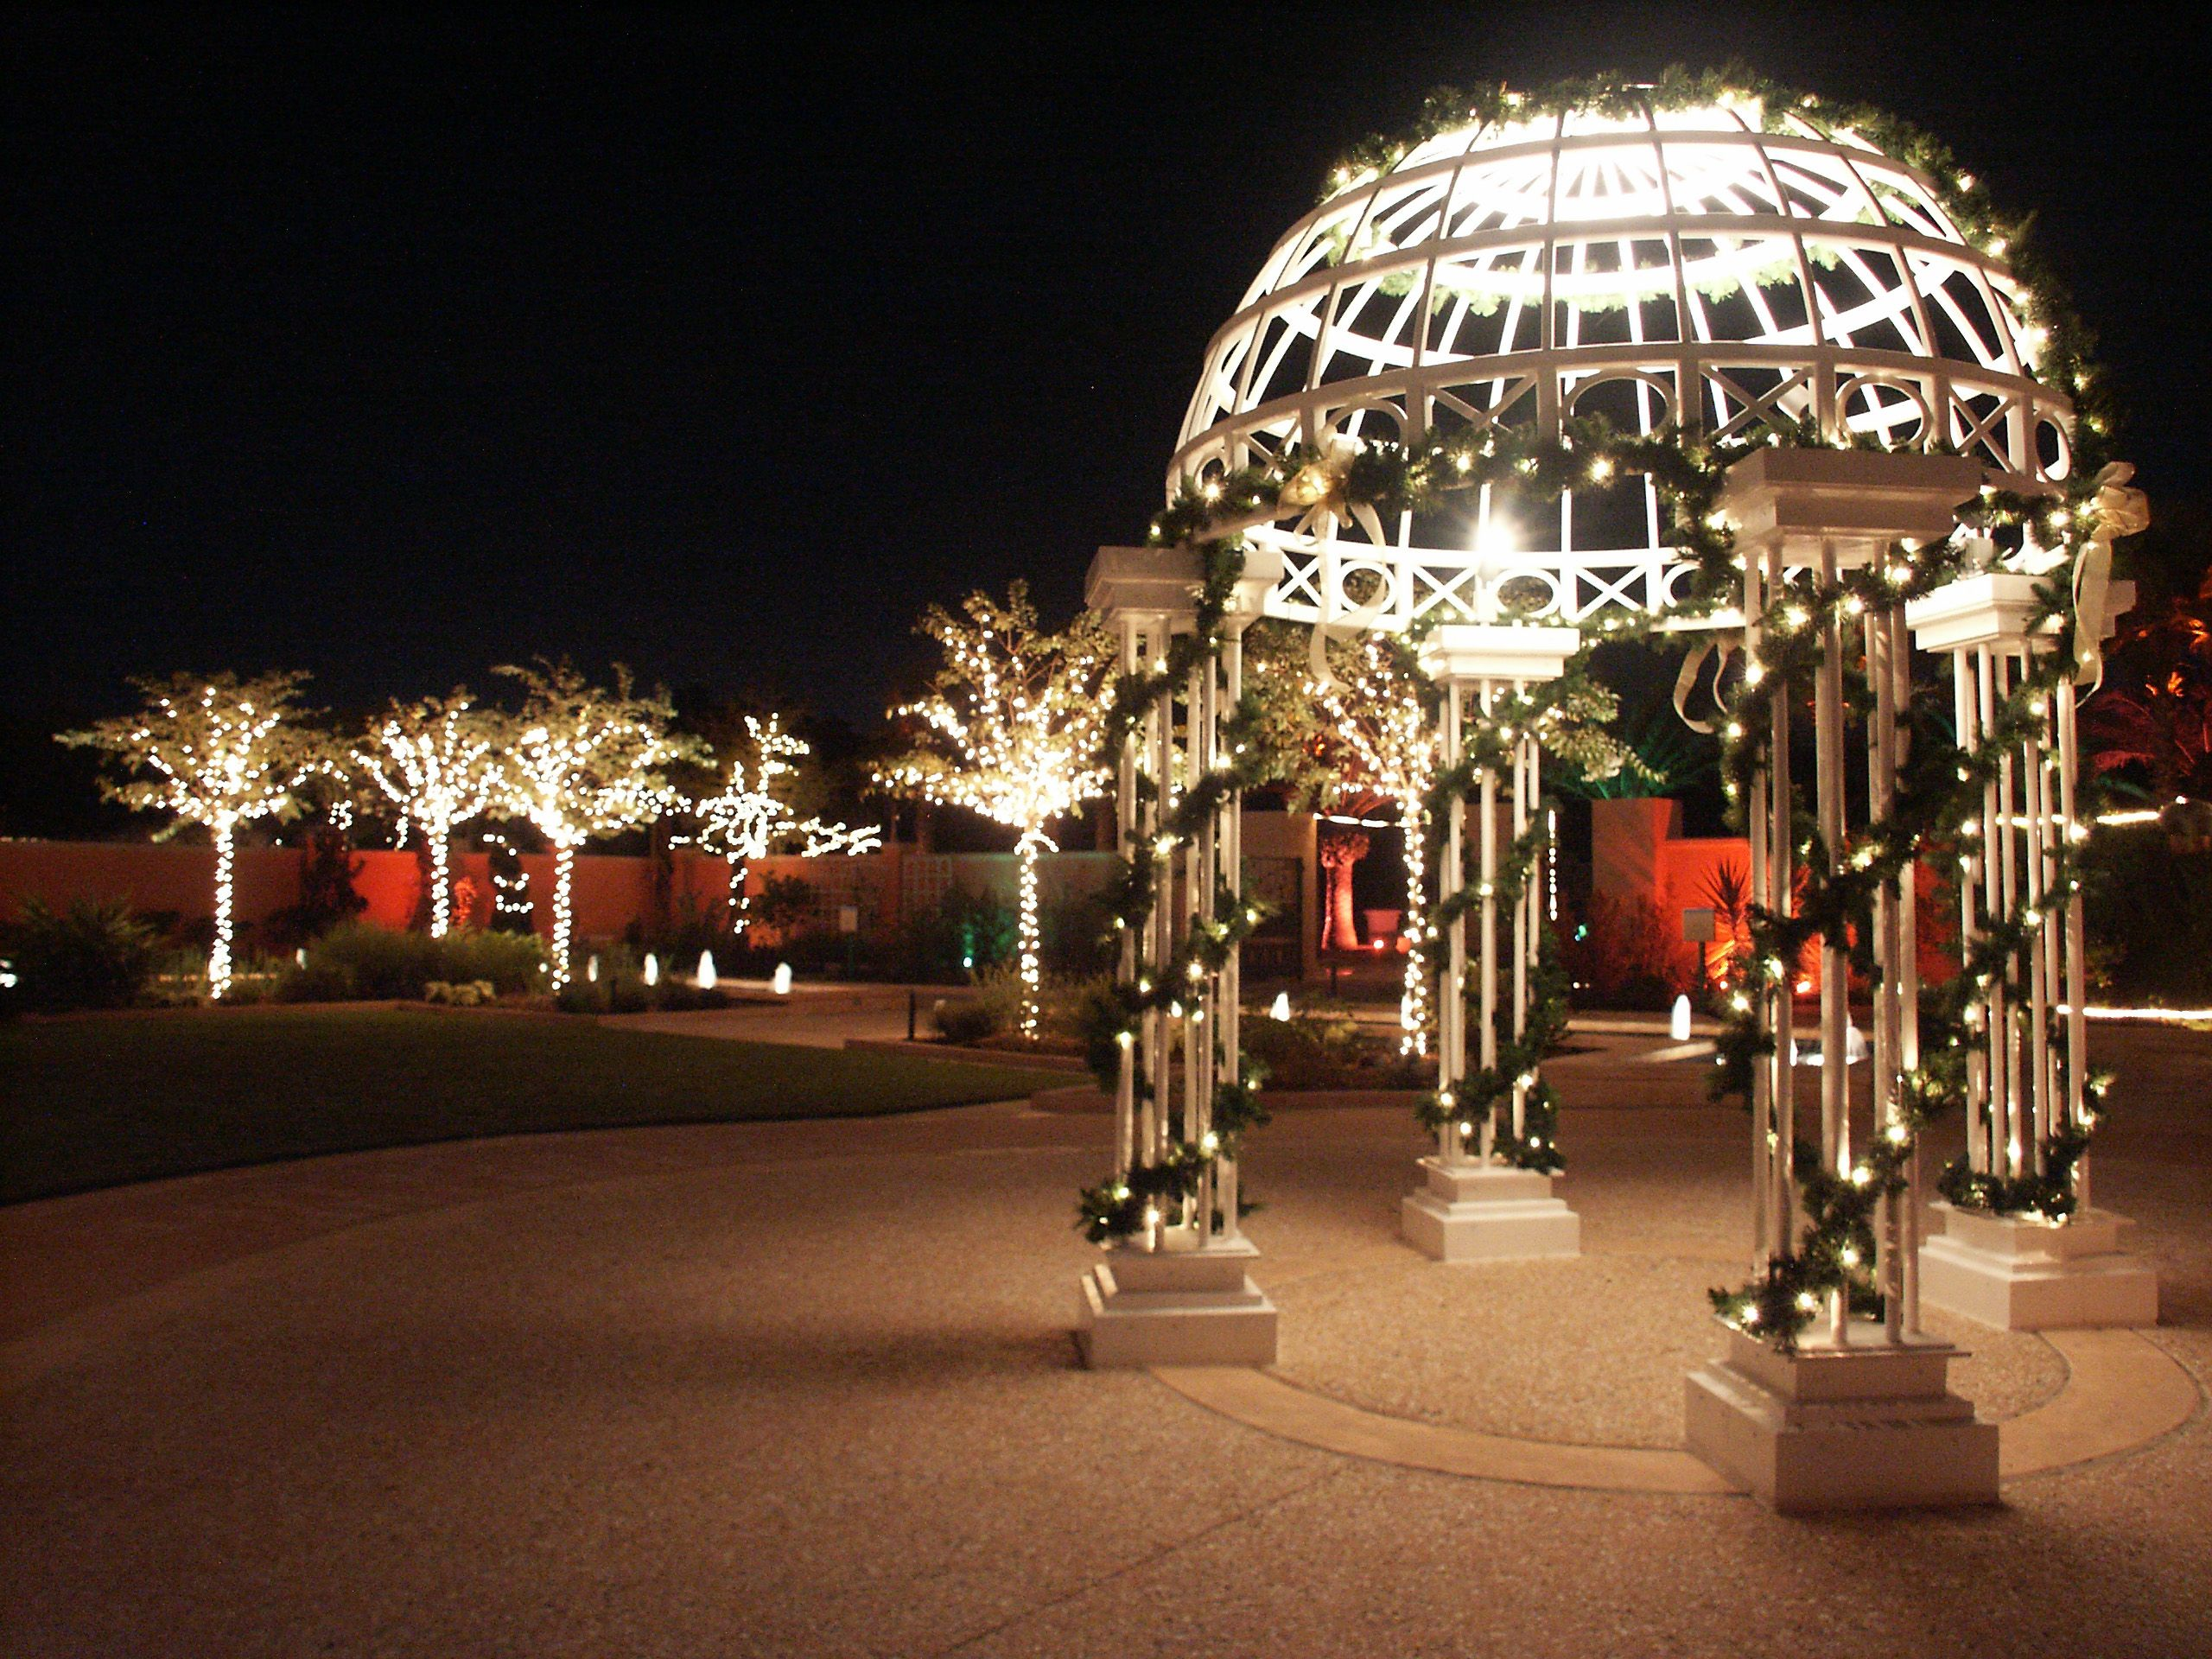 The Florida Botanical Gardens In Largo Gives You A Private Garden To  Perform Your Ceremony In